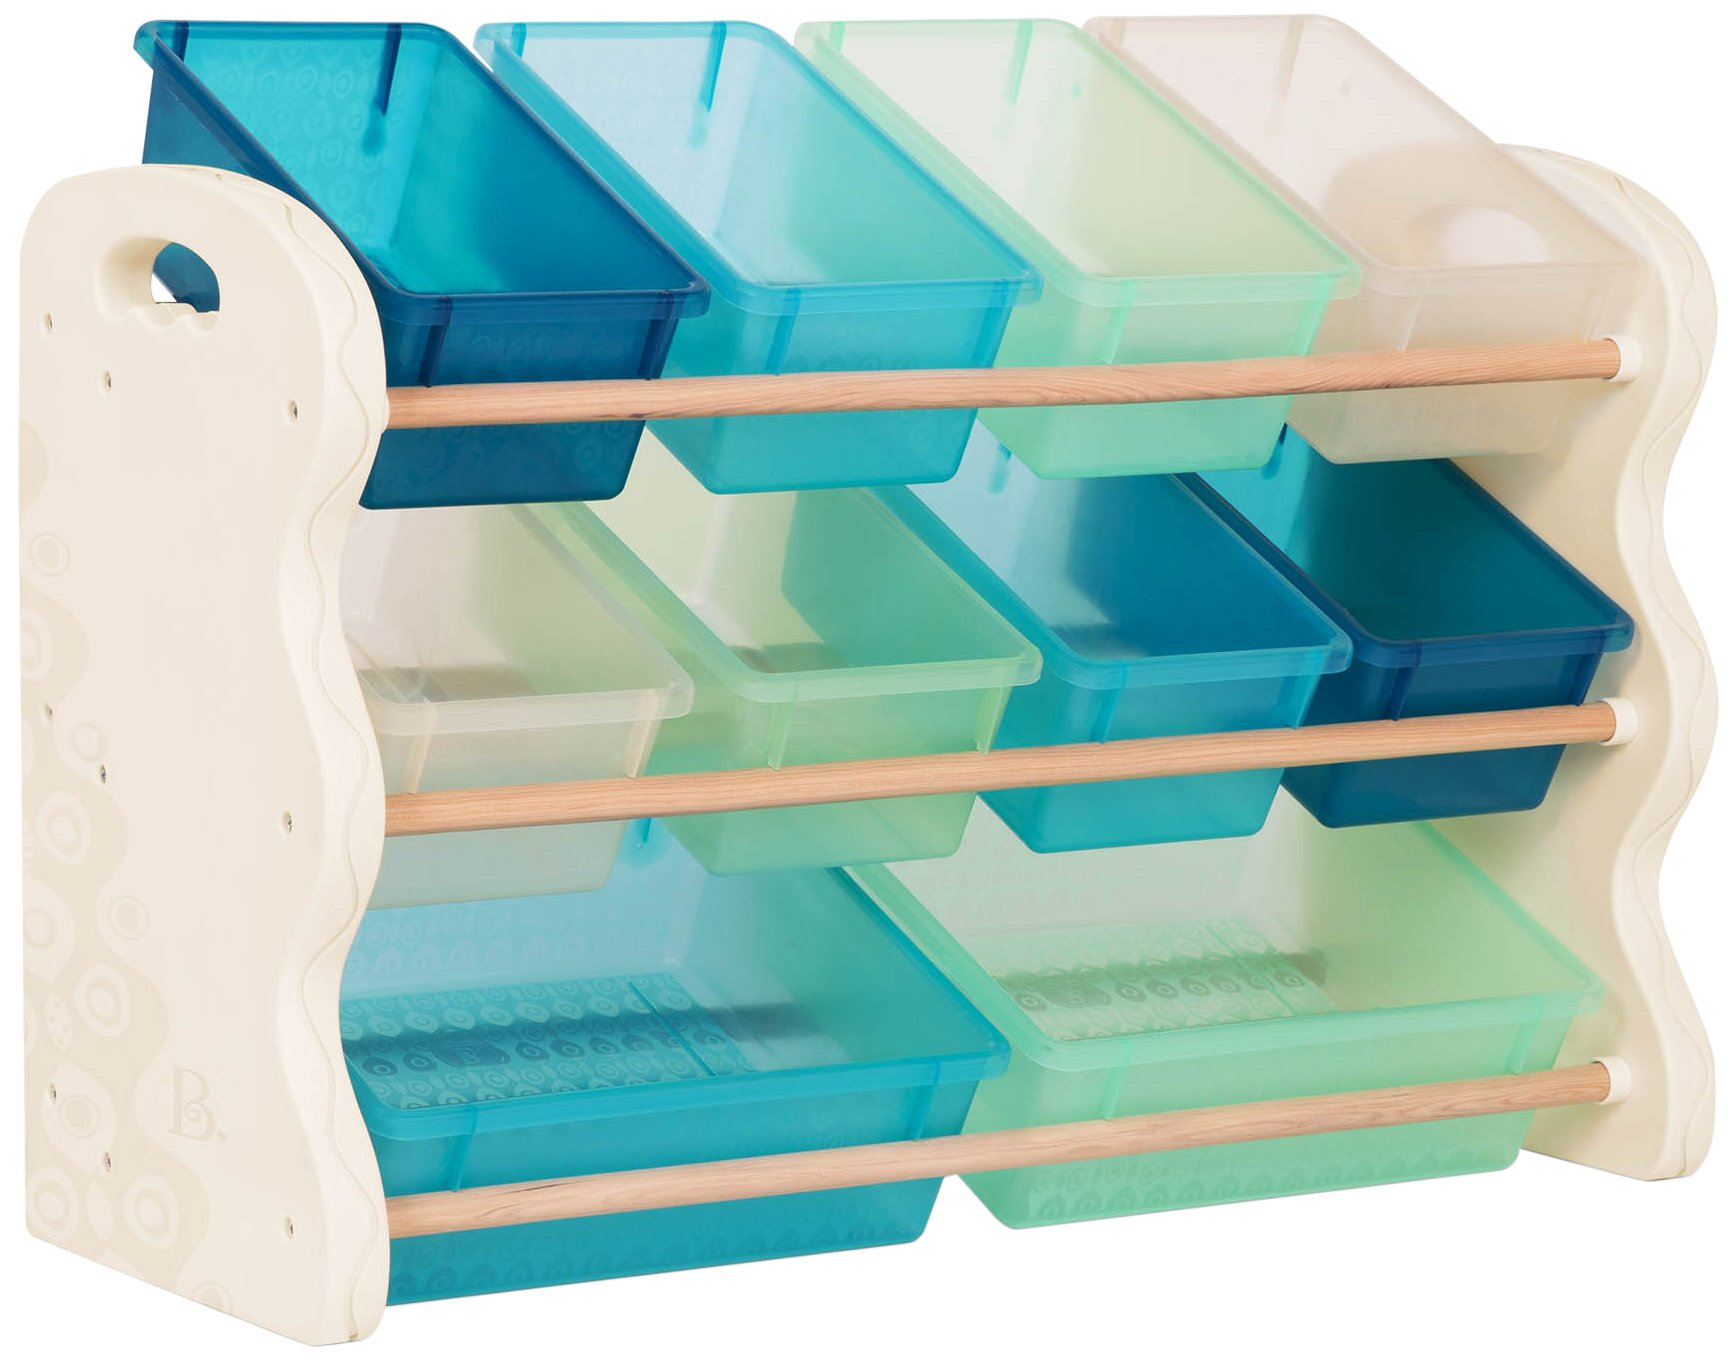 B. spaces by Battat - Totes Tidy Toy Organizer - Kids Furniture Set Storage Unit with 10 Stackable Bins - Ivory, Sea and Mint by B. spaces by Battat